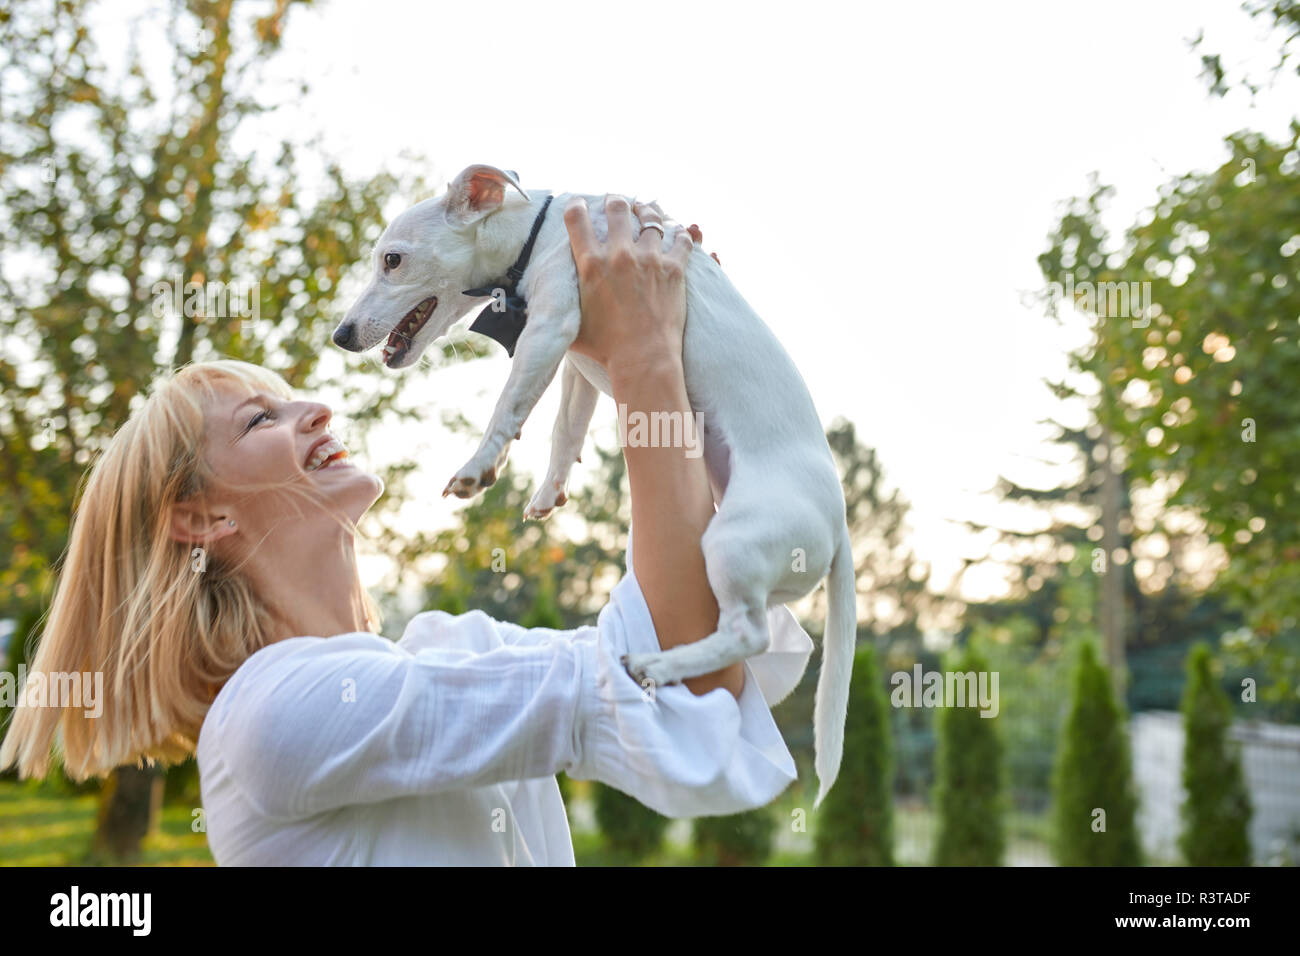 Happy woman holding dog wearing a bowtie outdoors - Stock Image